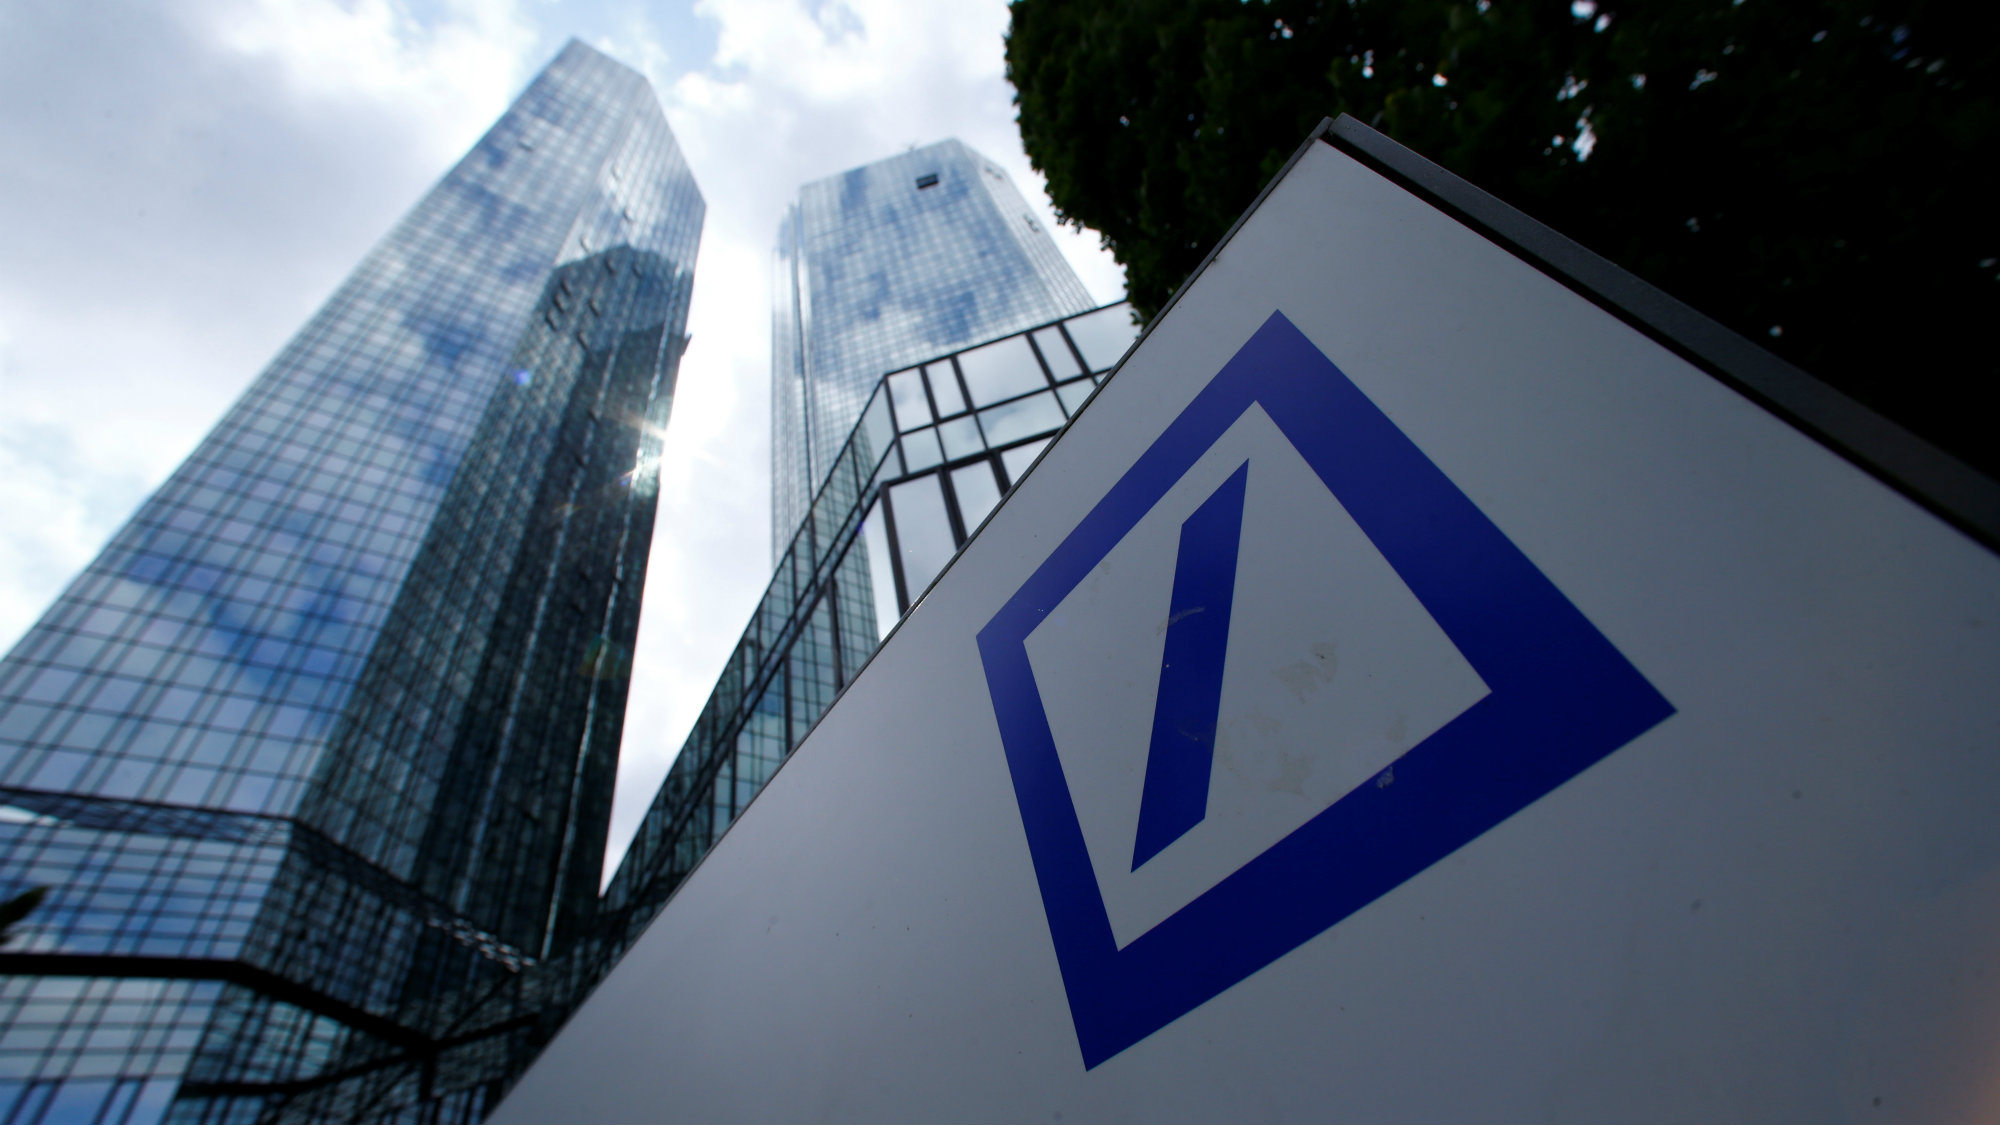 A Deutsche Bank logo adorns a wall at the company's headquarters in Frankfurt, Germany.